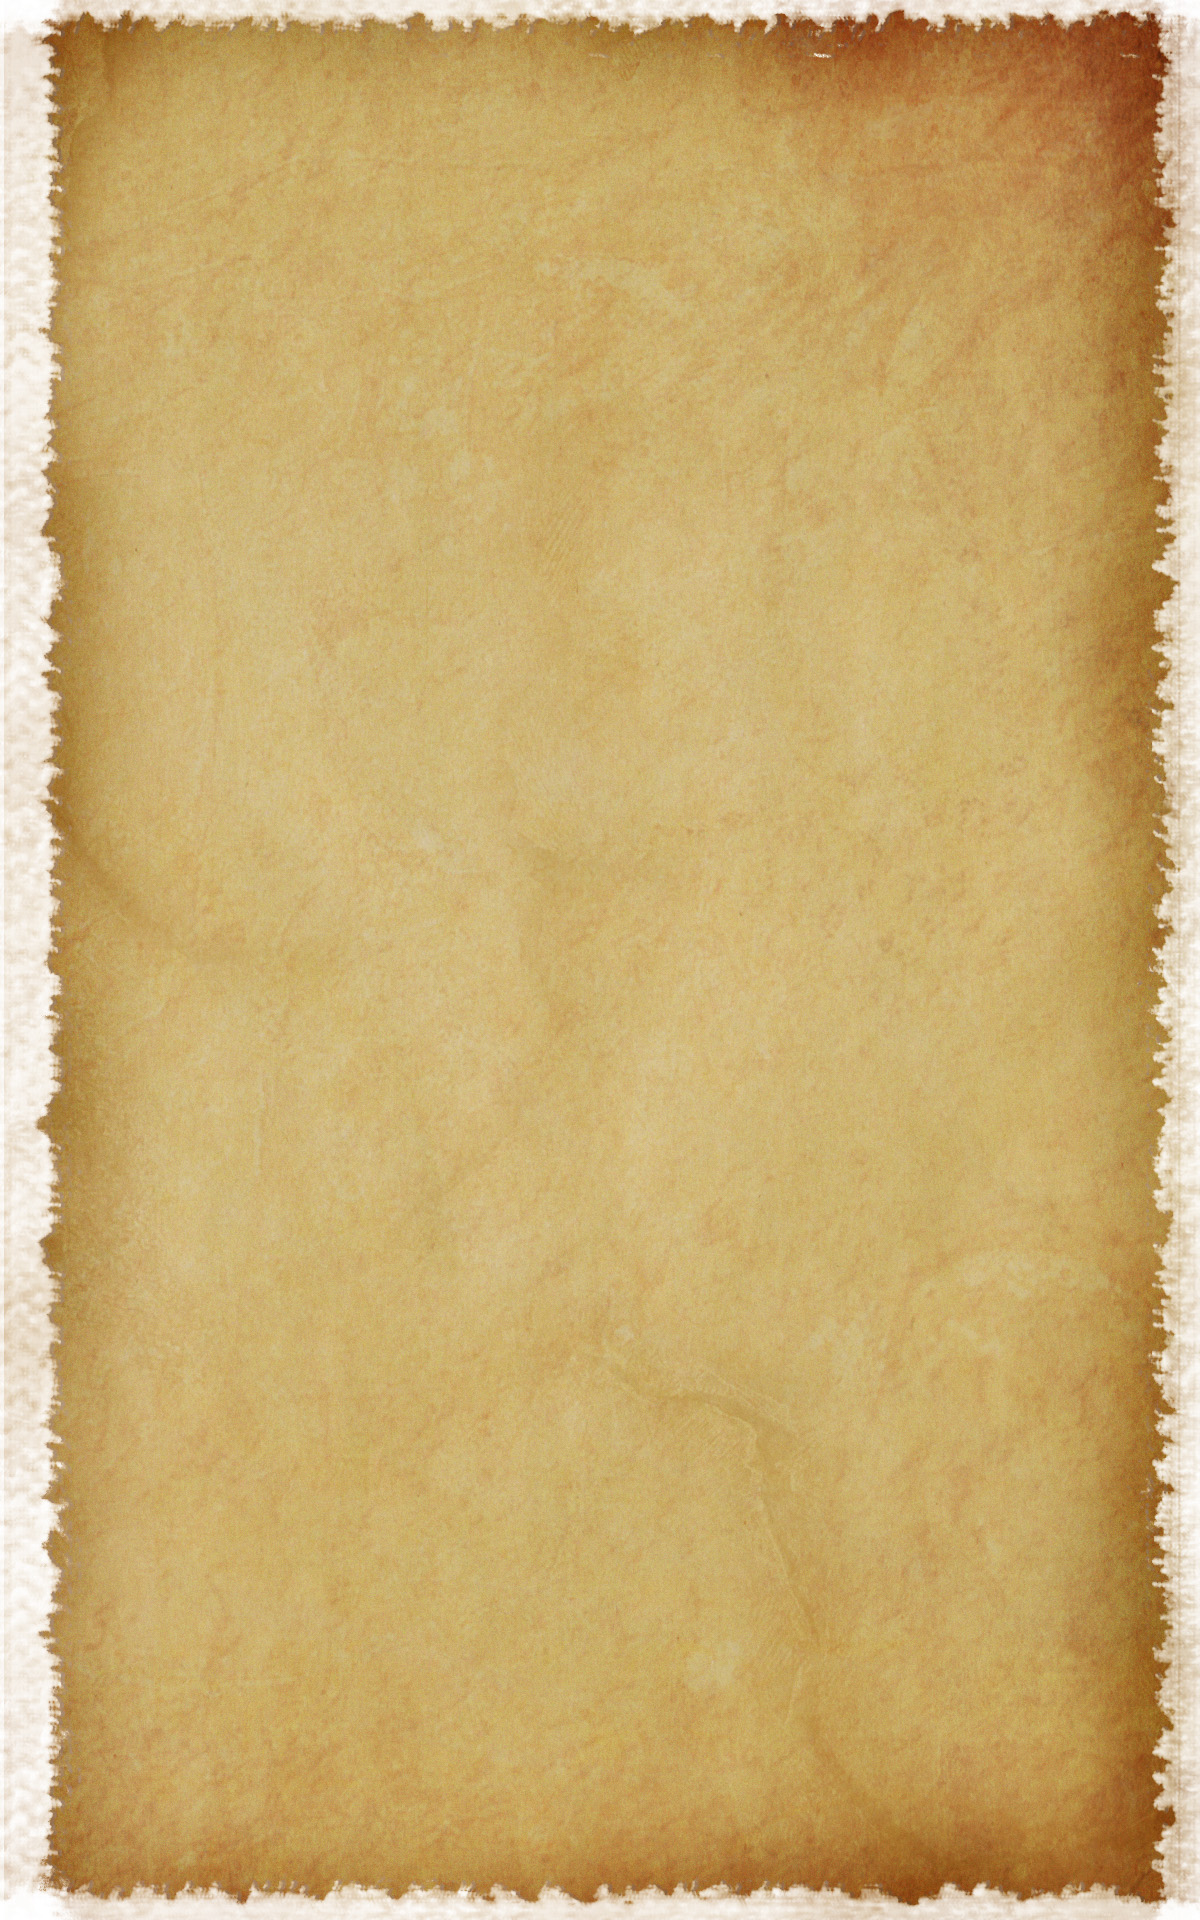 Old paper backgrounds beige educational orange white templates old paper powerpoint templates download background toneelgroepblik Gallery